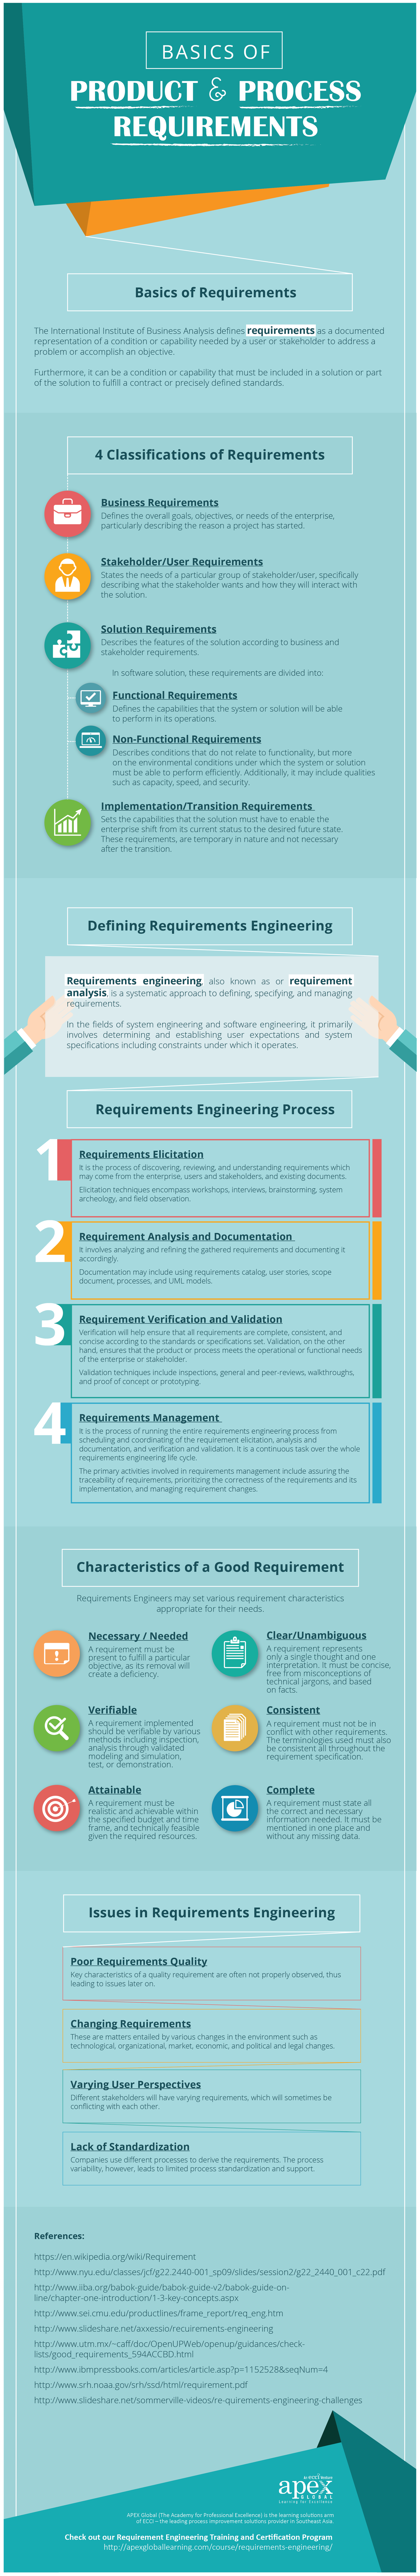 Basics of Product and Process Requirements-01